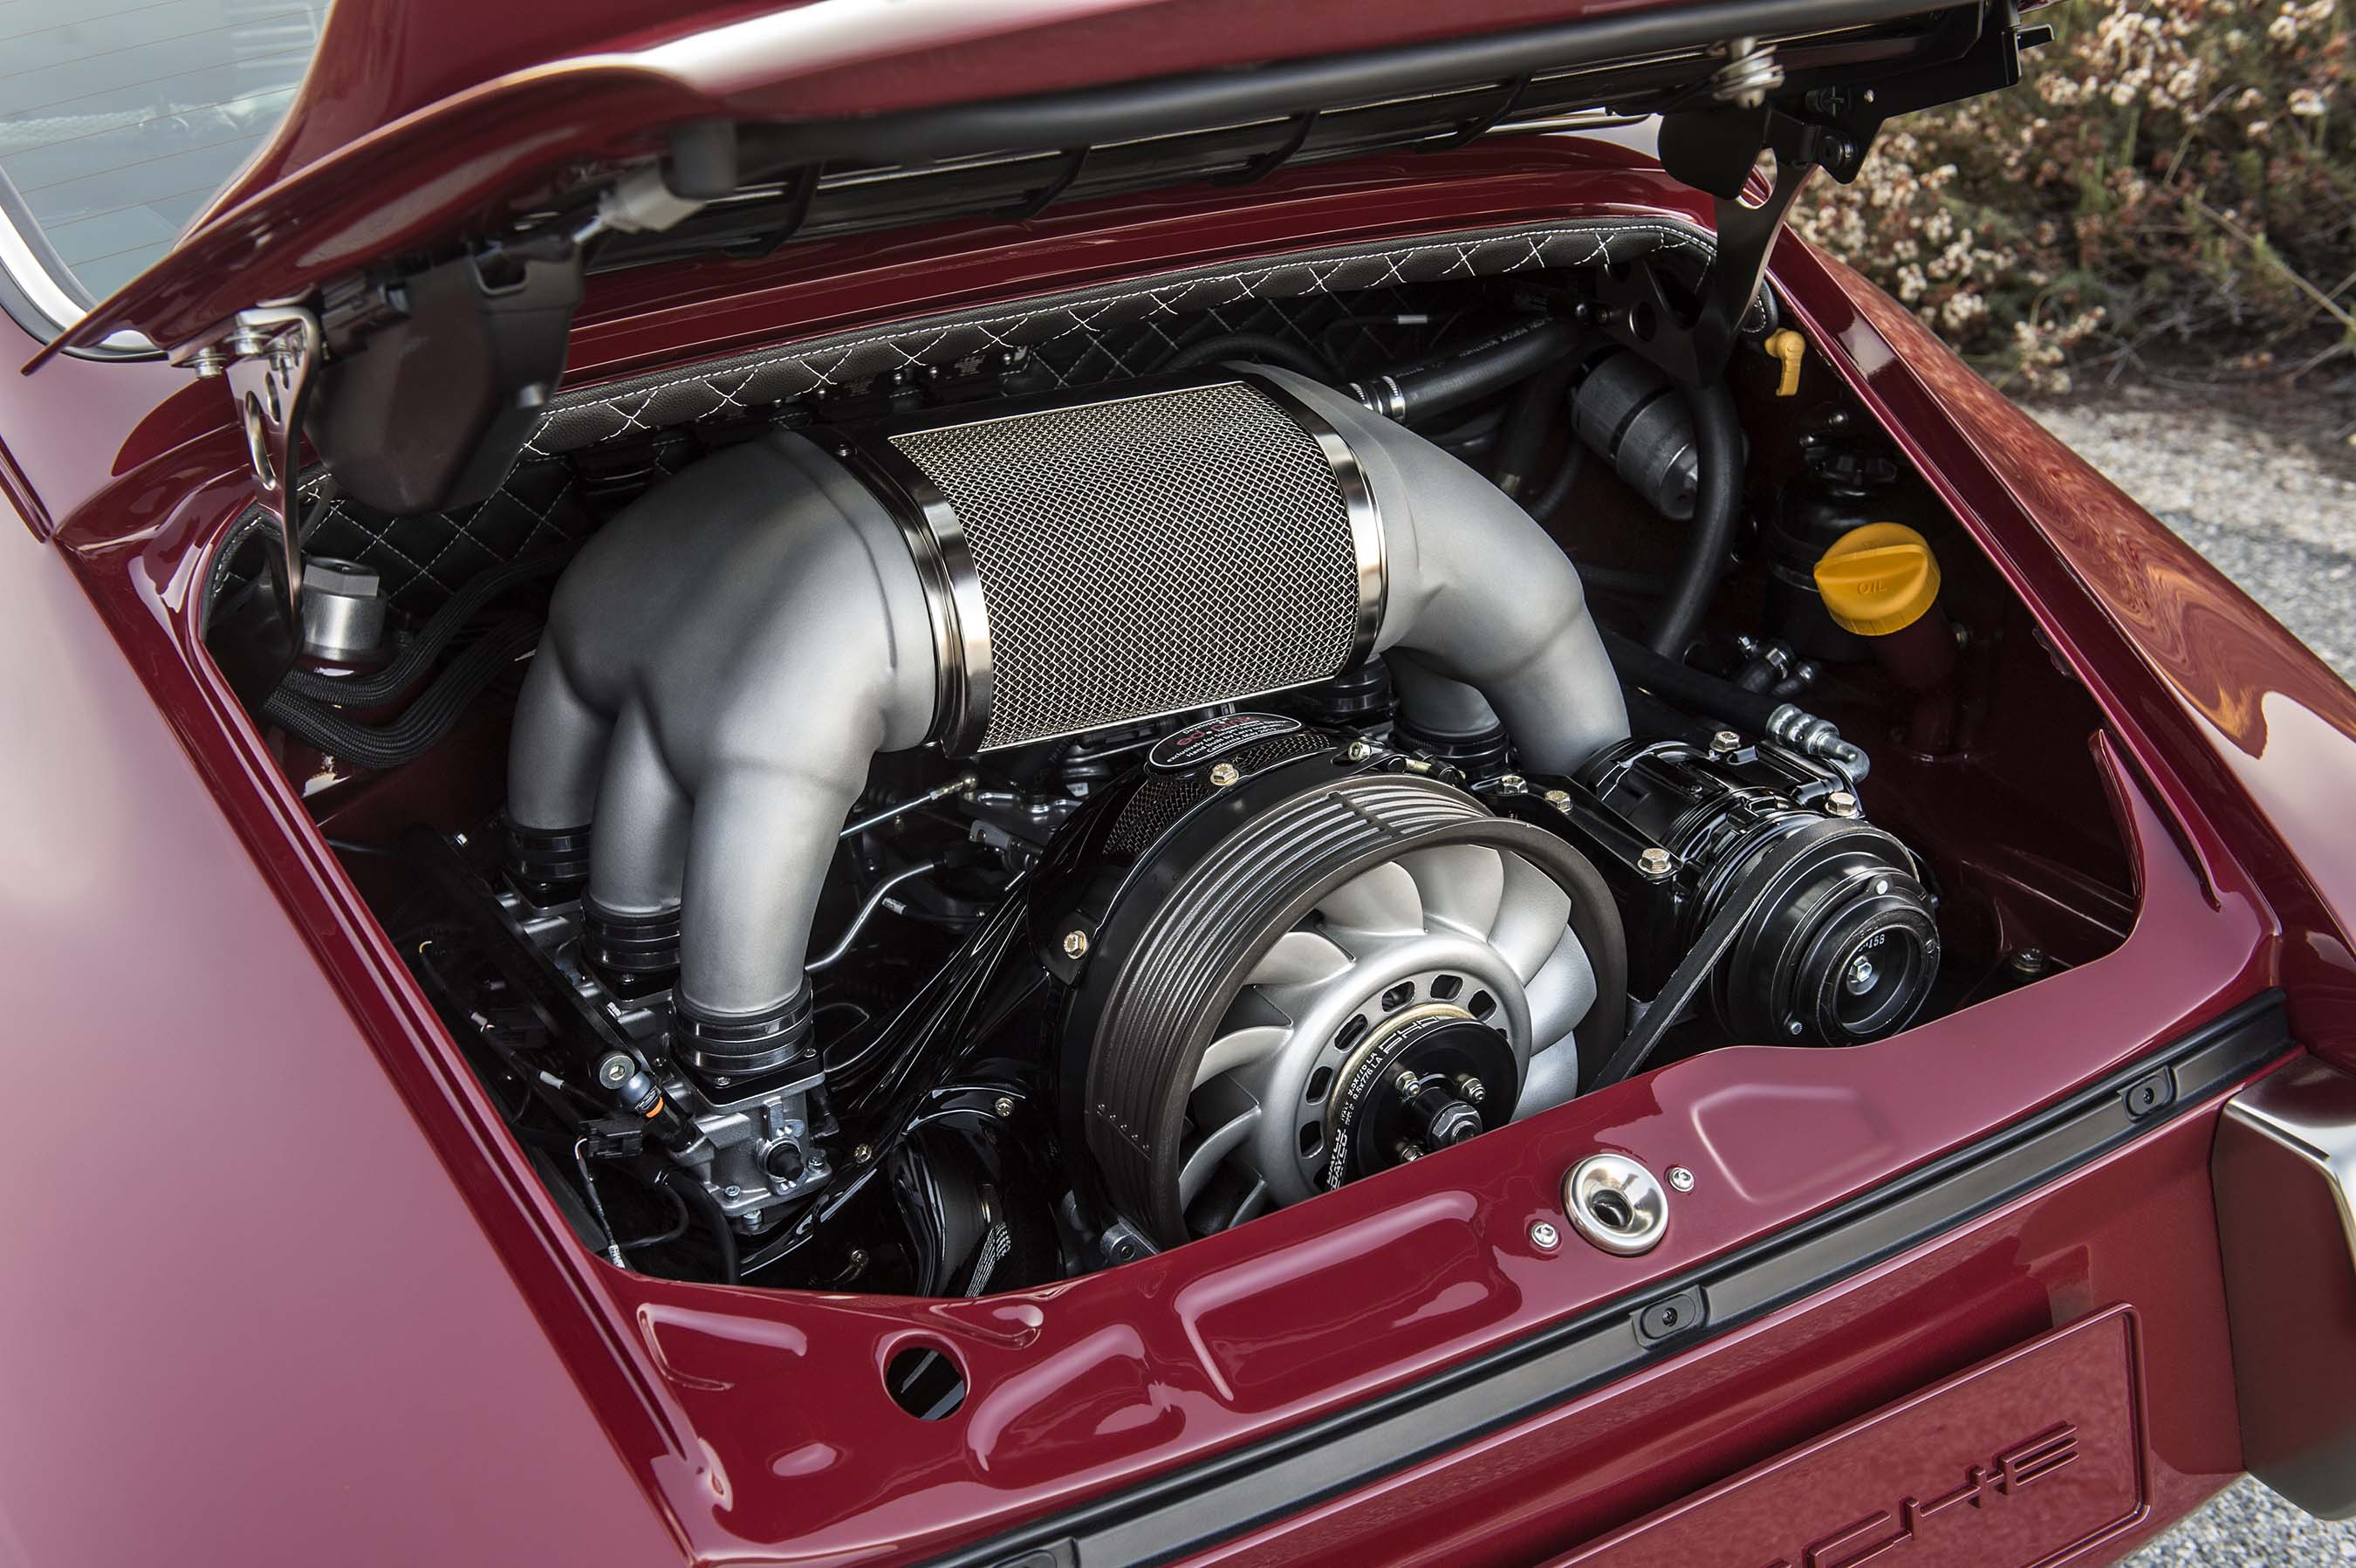 All 4-liter, 6-speed engines for Porsche 911's restored by Singer Vehicle Design reach 390hp and are made exclusively for Singer by Ed Pink Racing Technologies